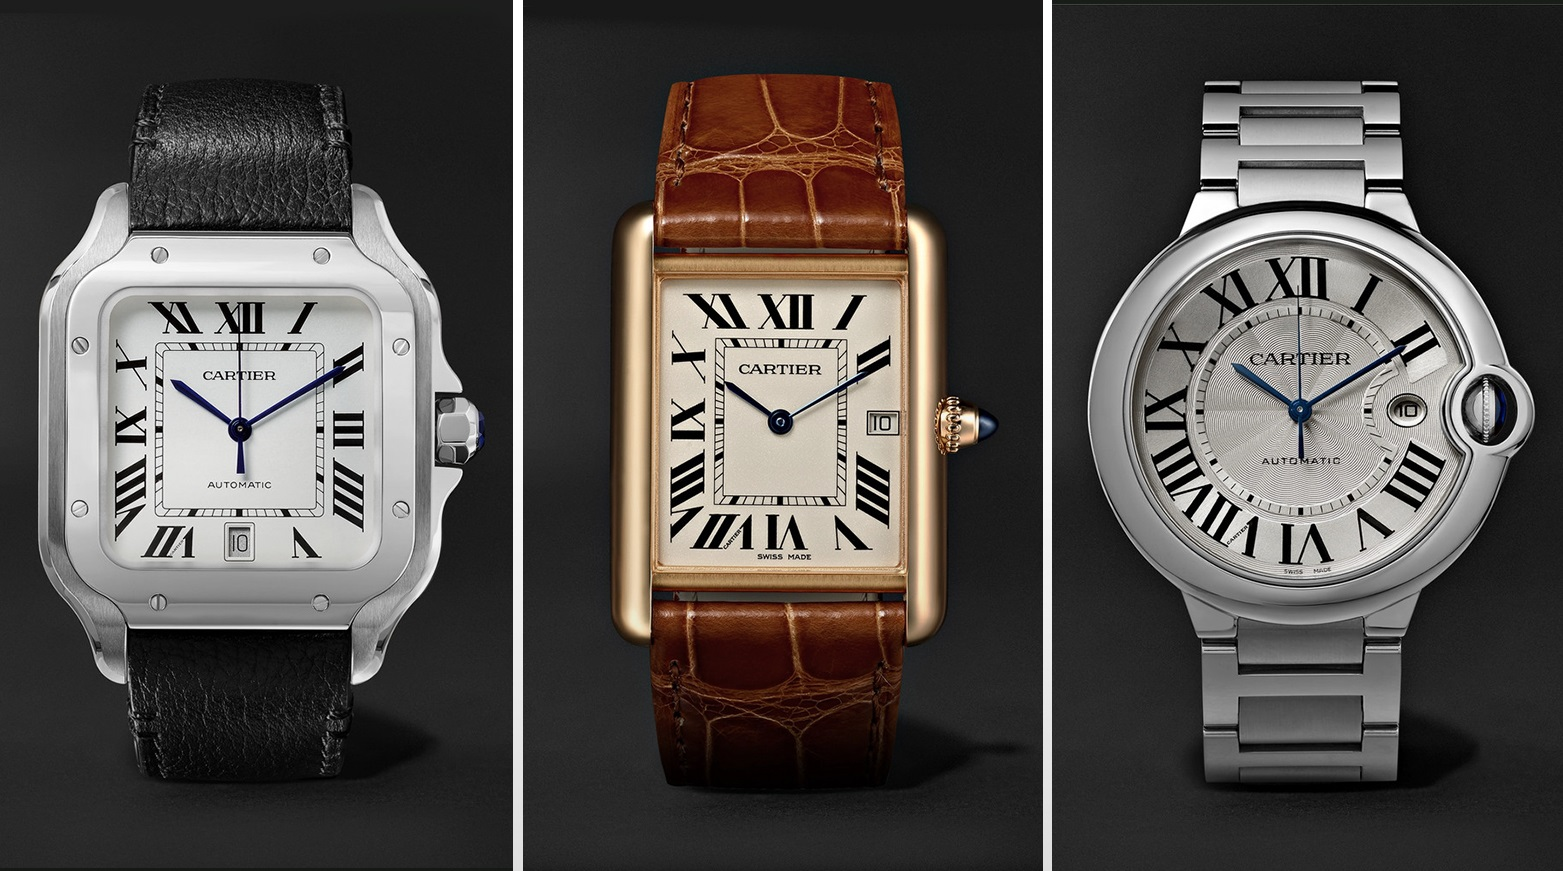 Replica Respectable Watches Cartier